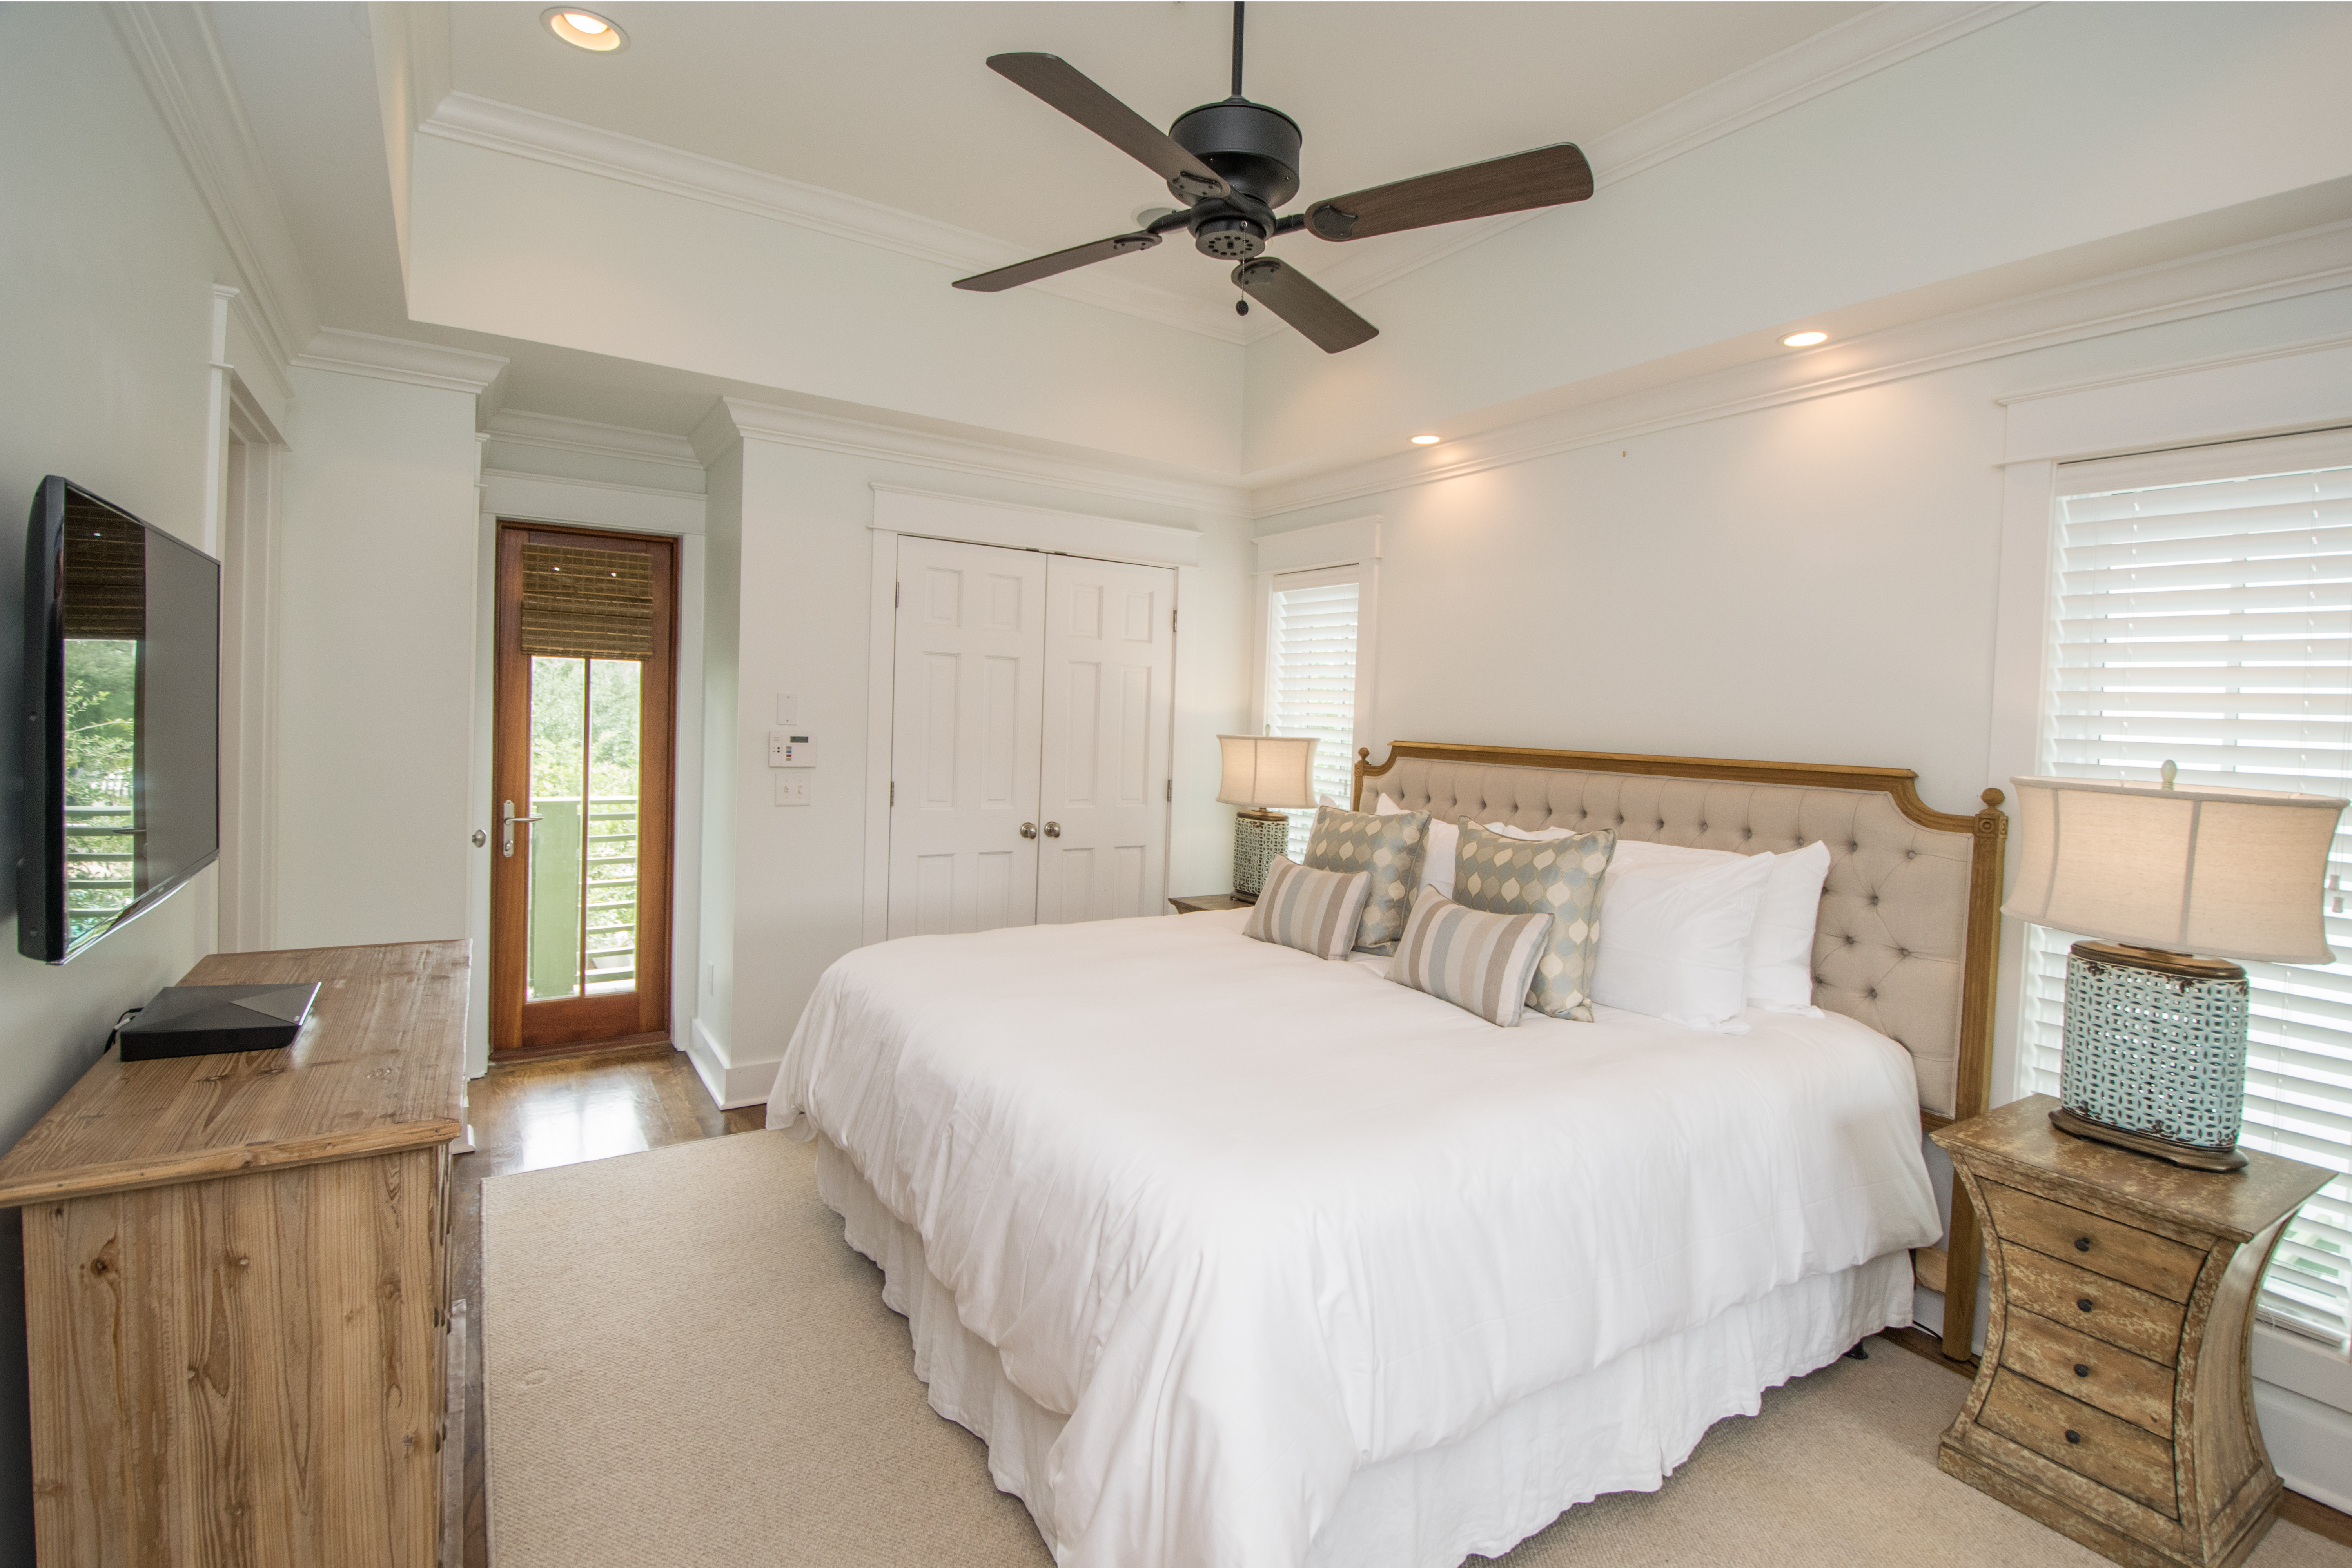 King Master Suite on 2nd floor with Ensuite Full Bath